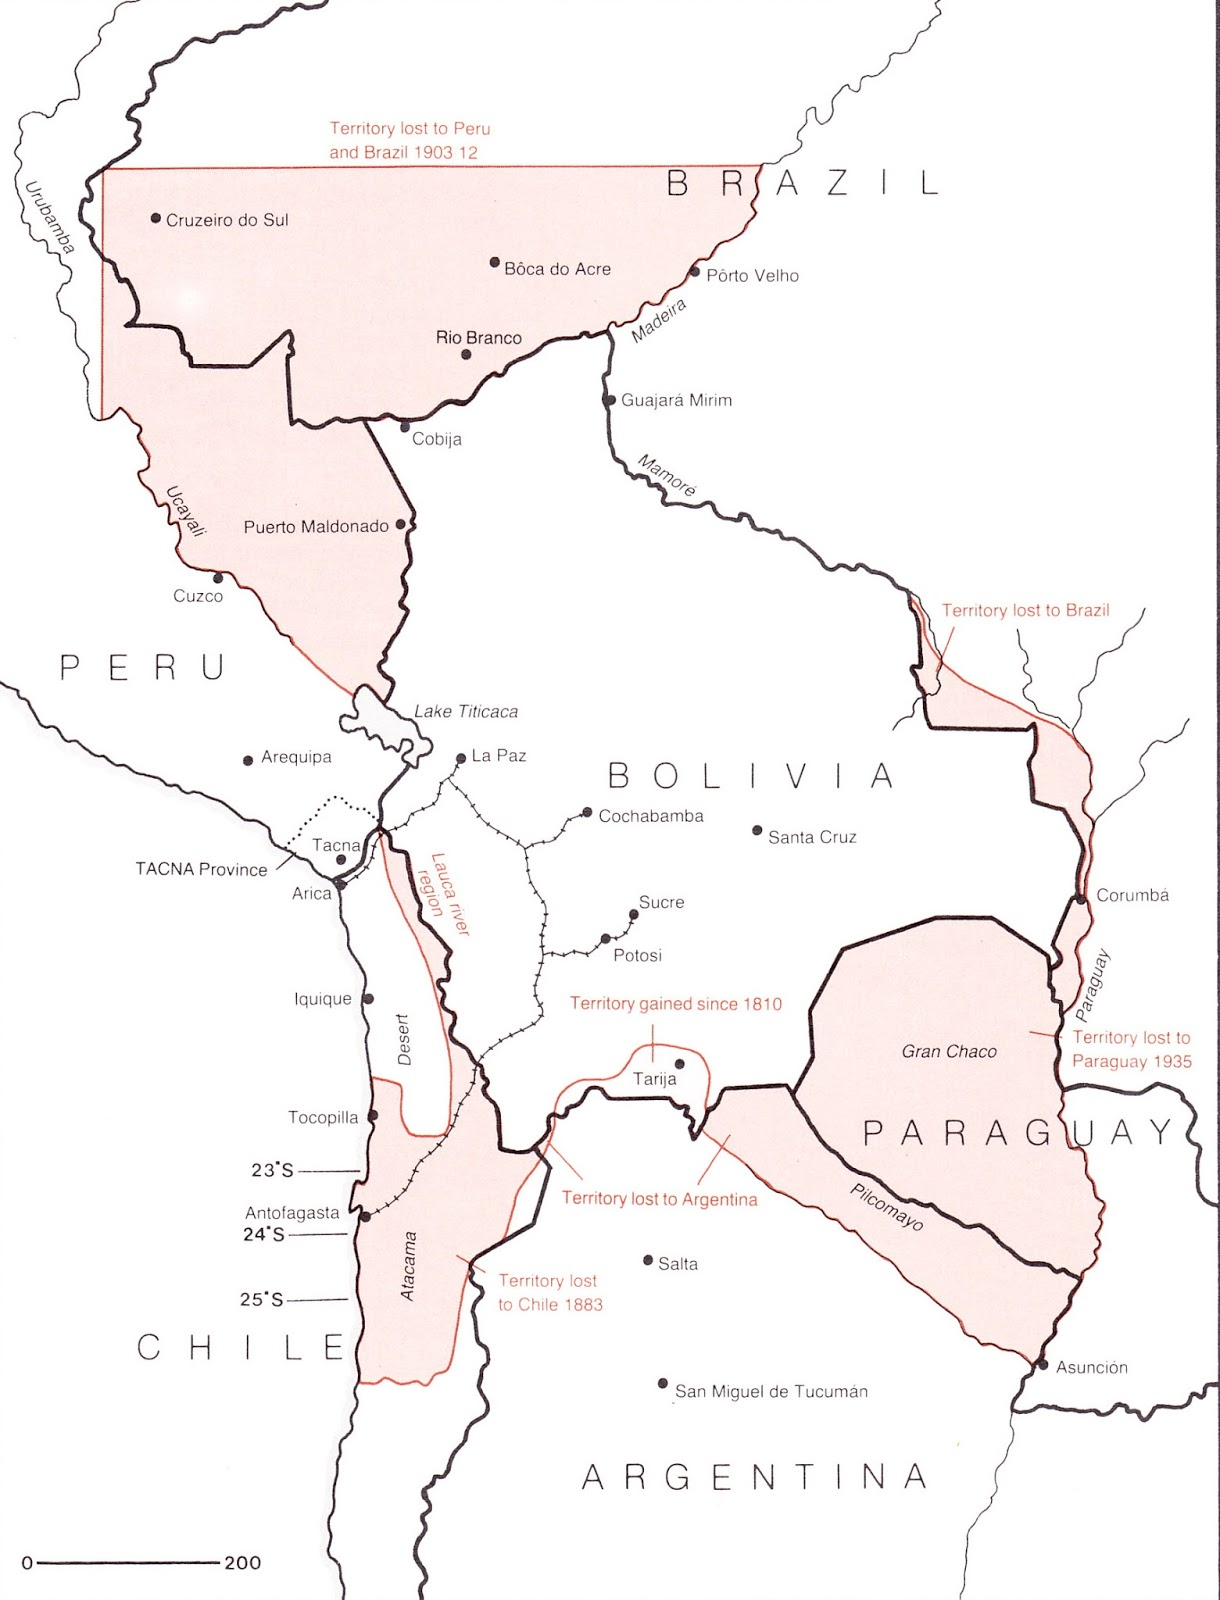 Territorial changes to Bolivia since independence (1825)